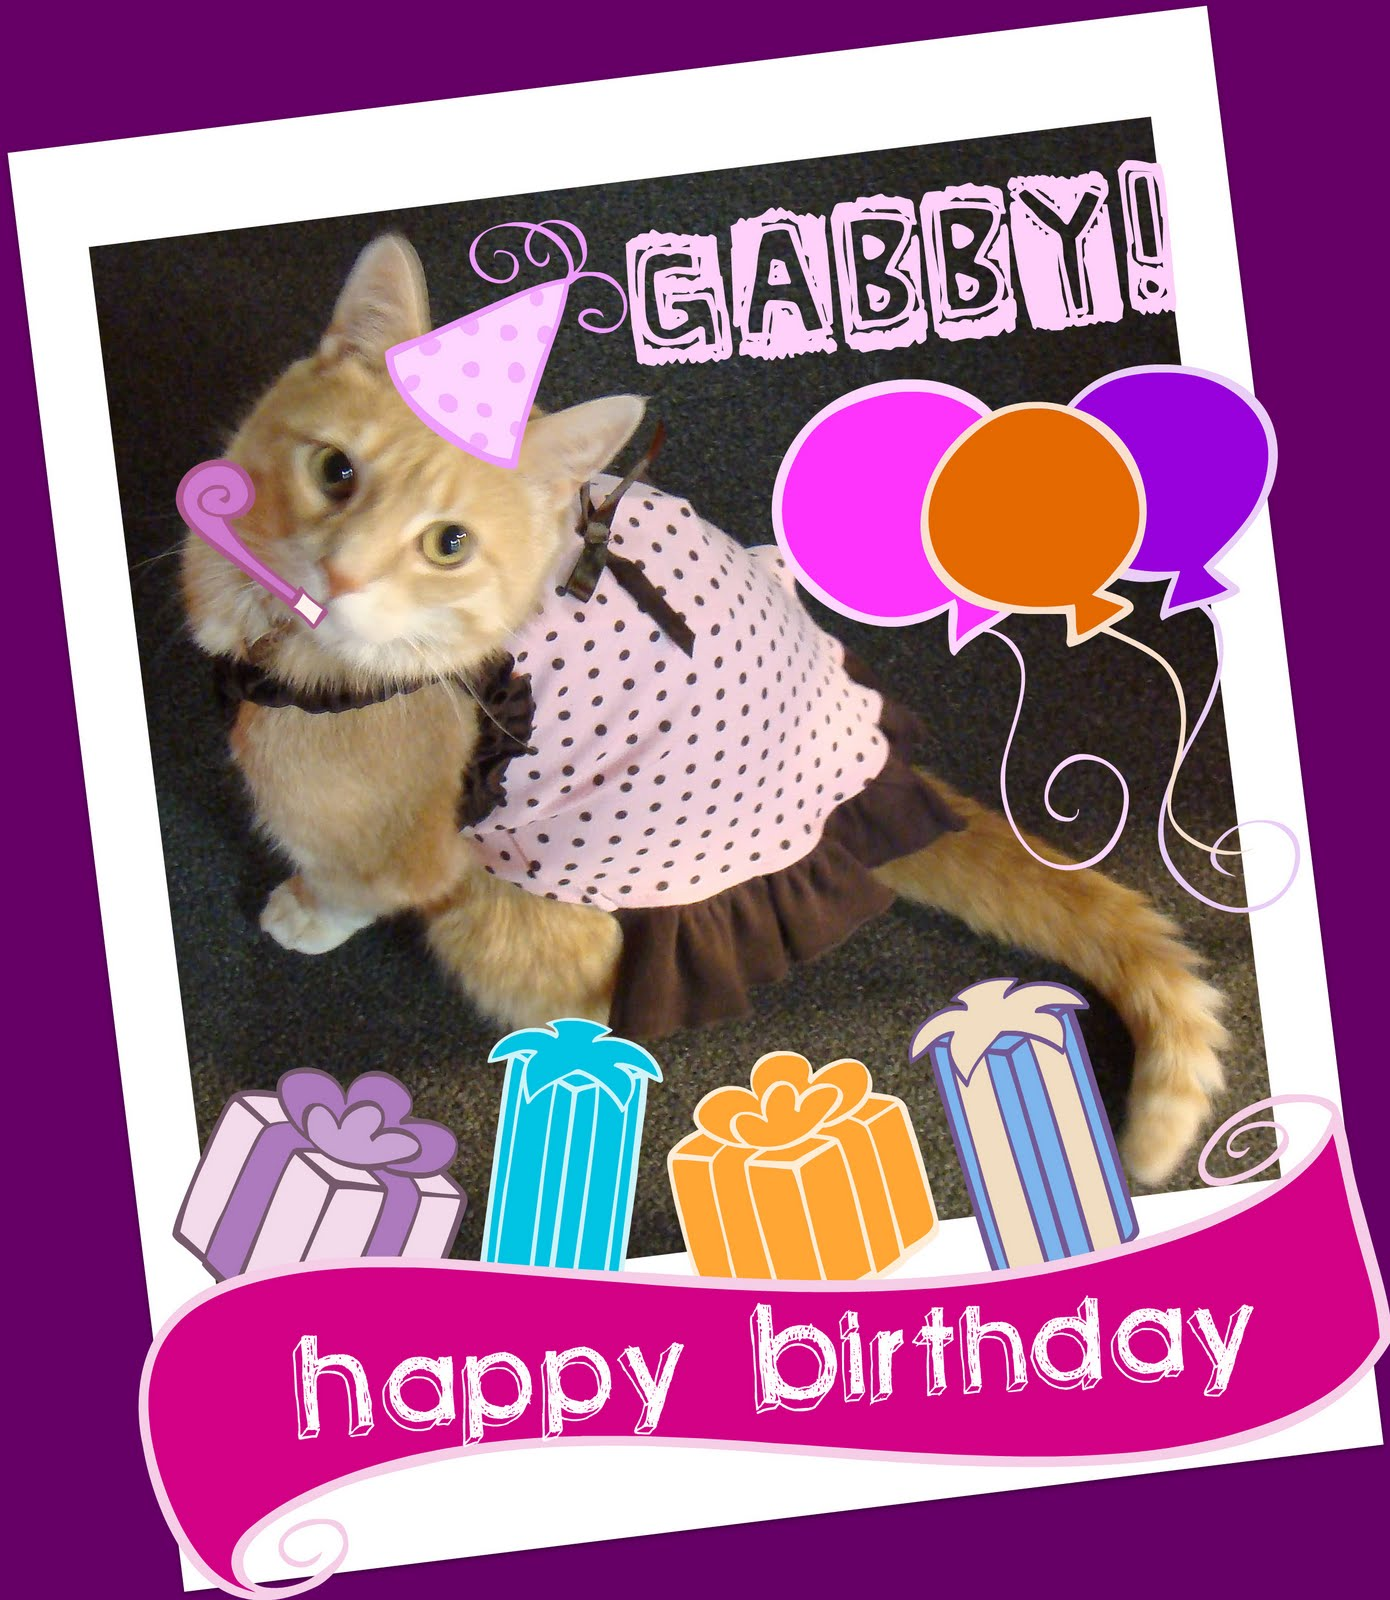 Feline Underground: Happy Birthday, Gabby